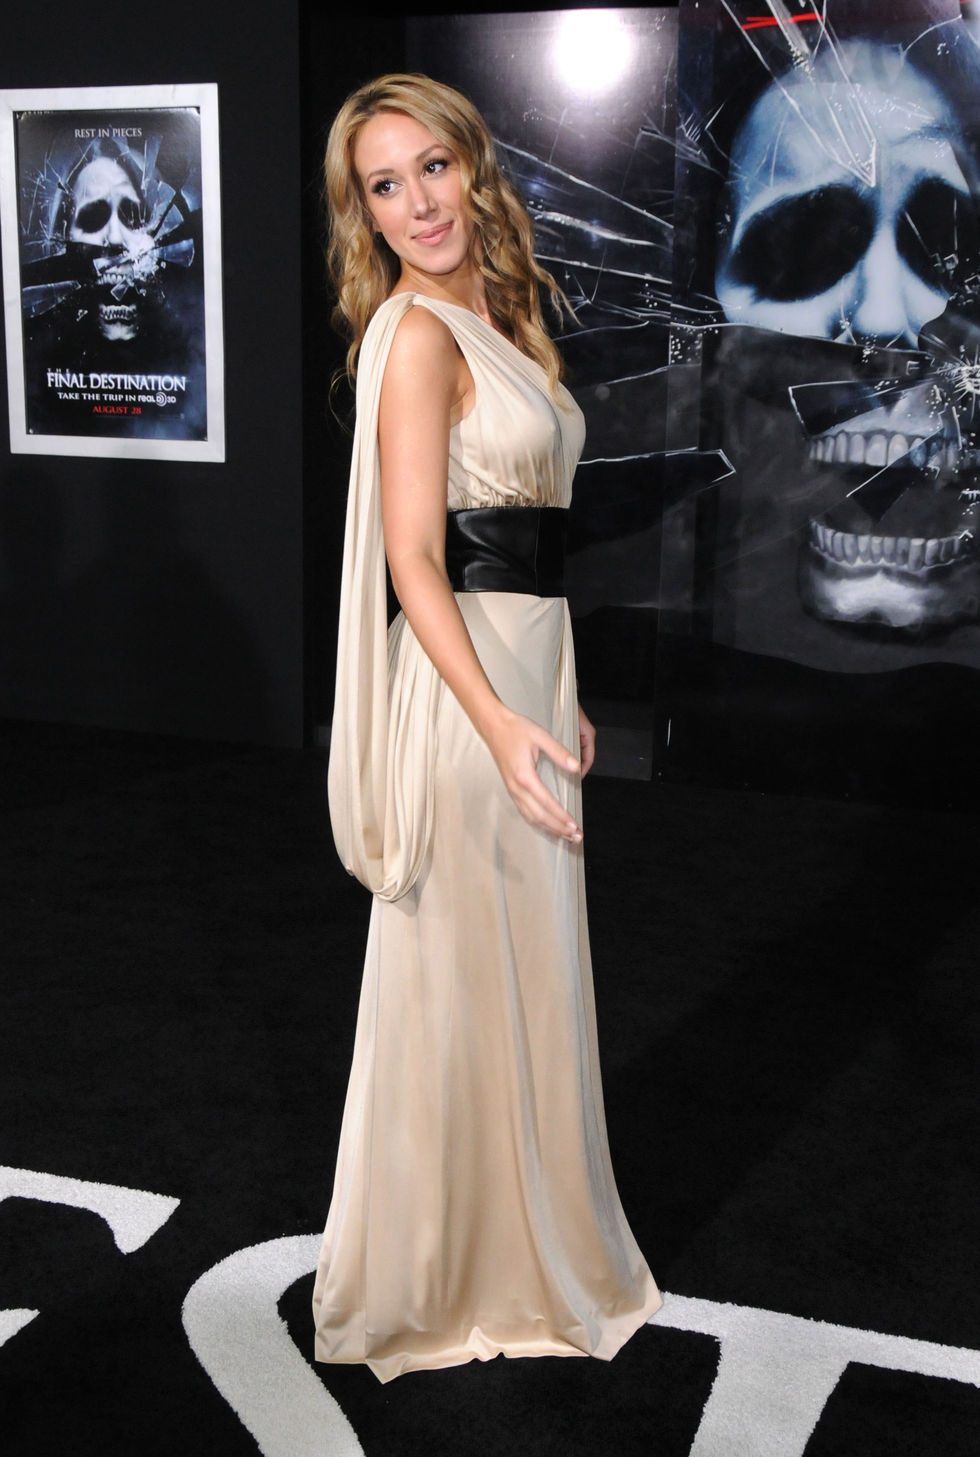 haylie-duff-the-final-destination-premiere-in-los-angeles-01